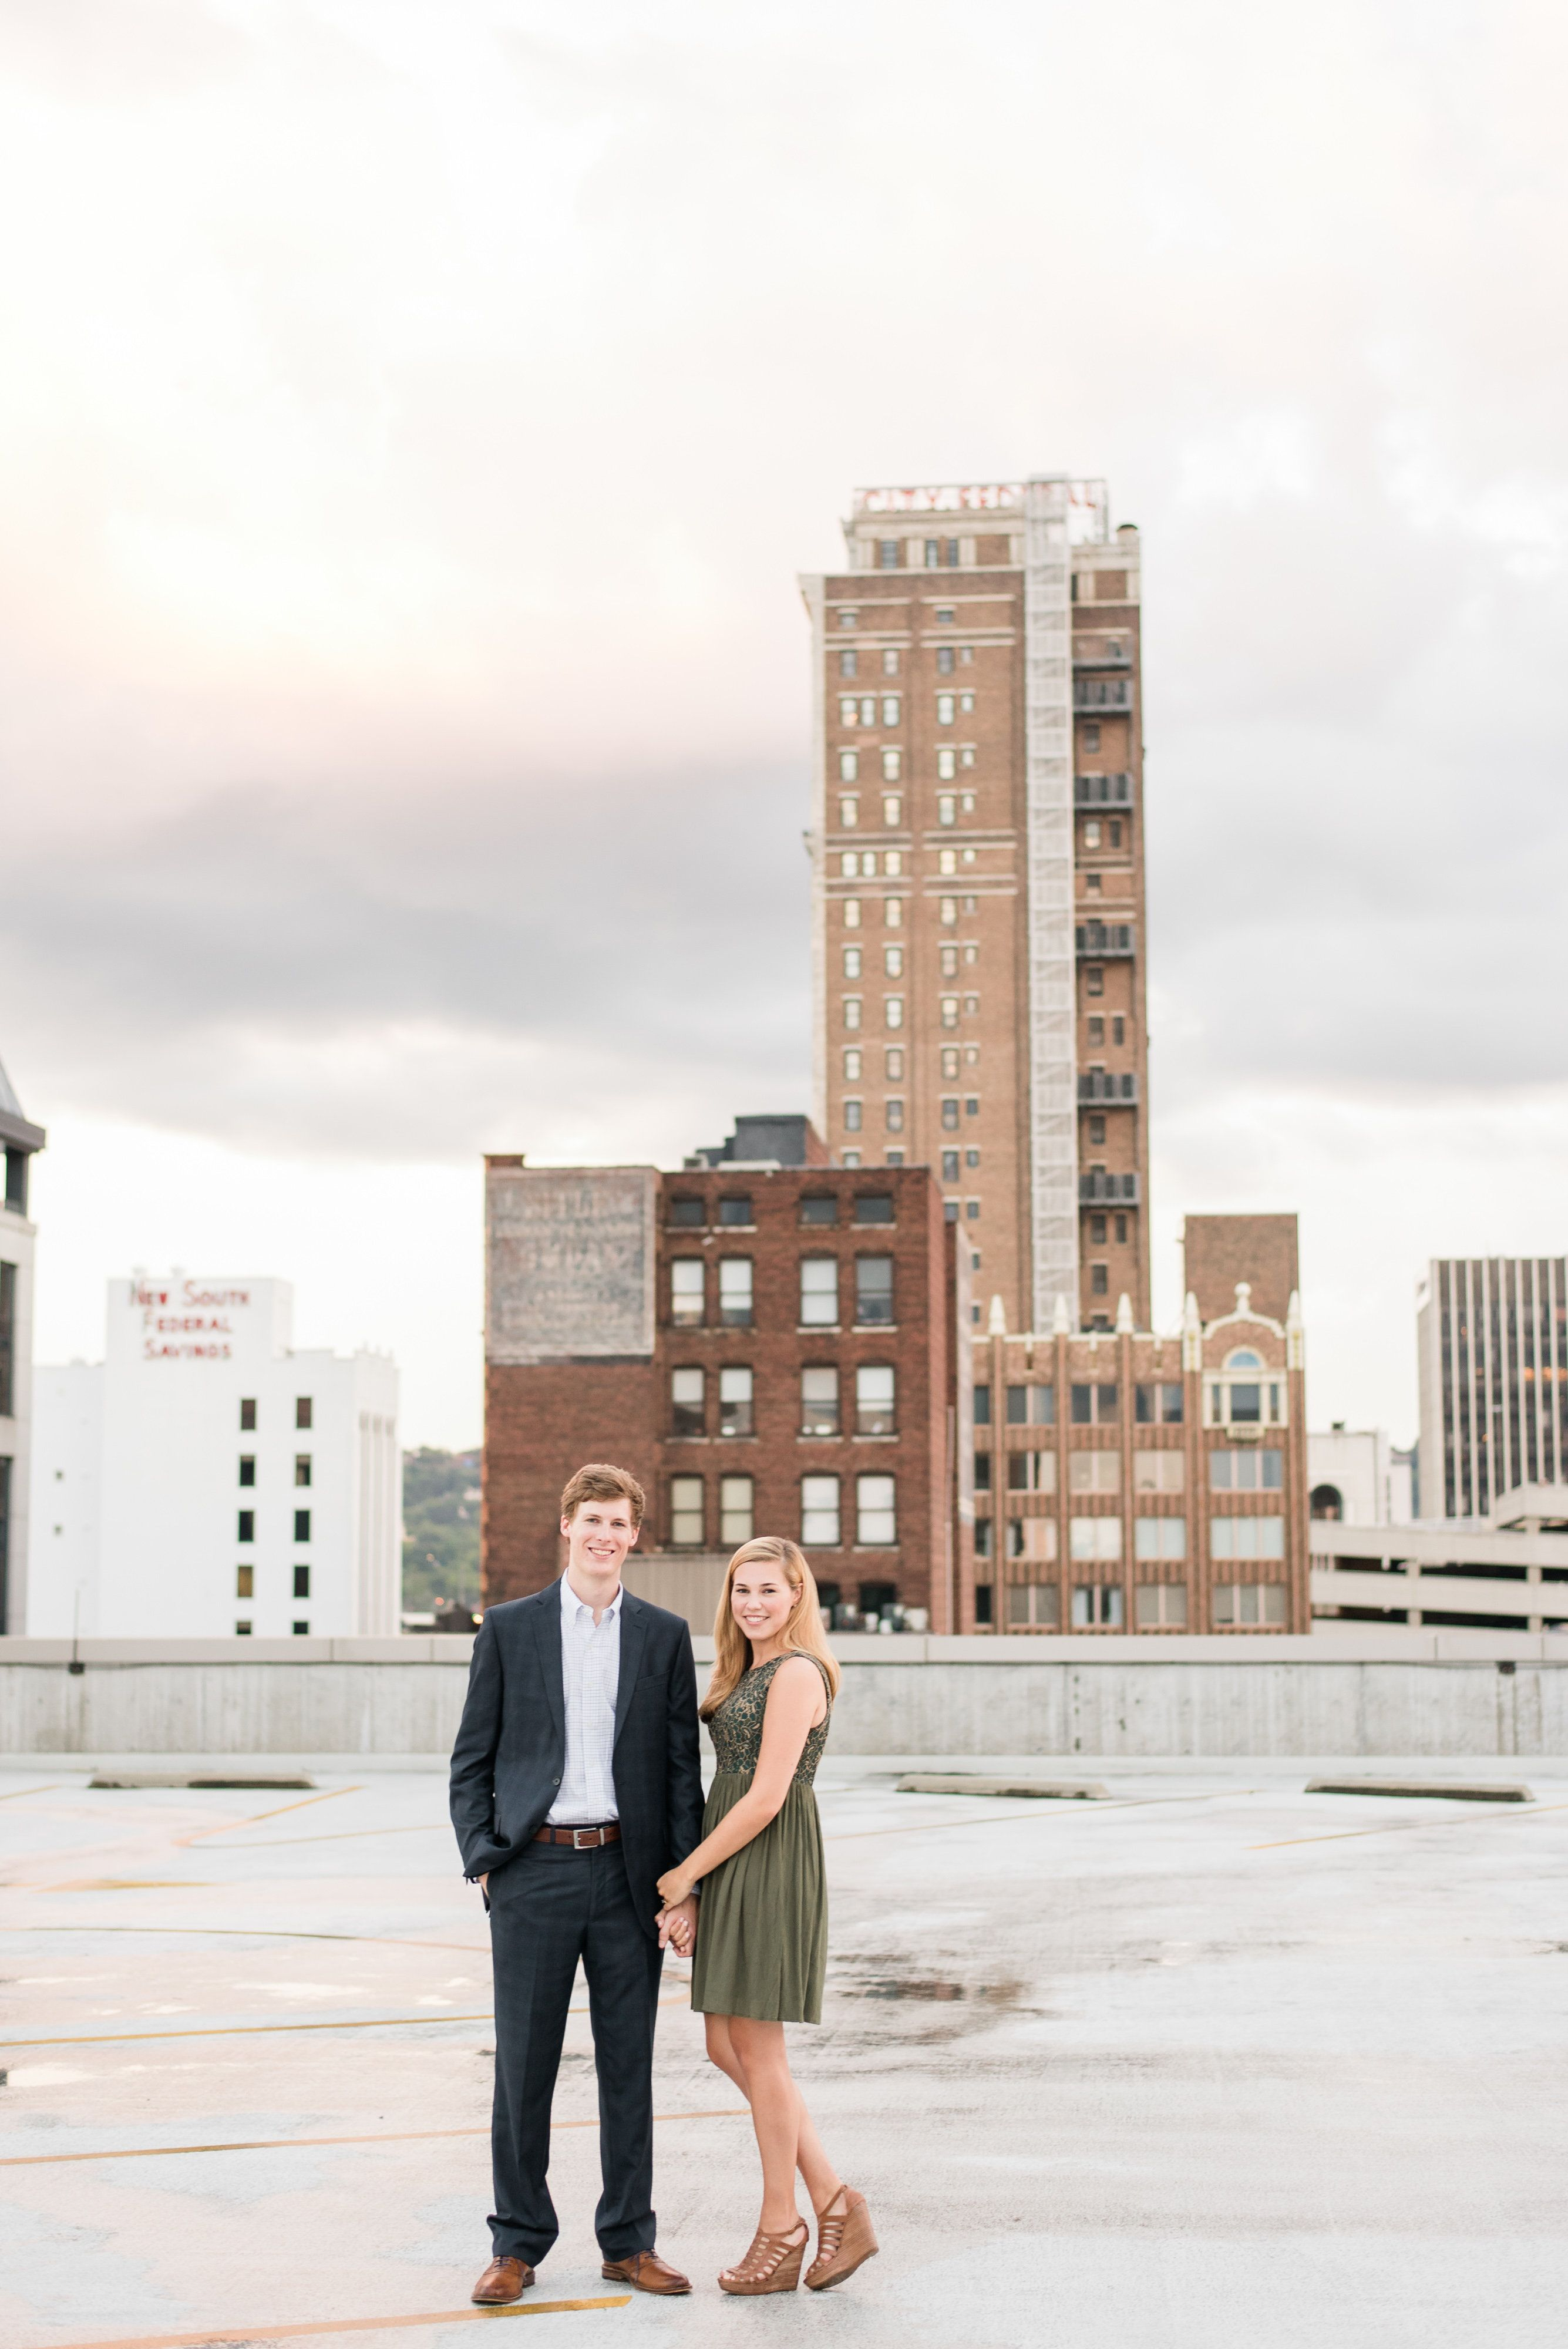 Downtown Rooftop Engagement Rooftop Photoshoot Birmingham